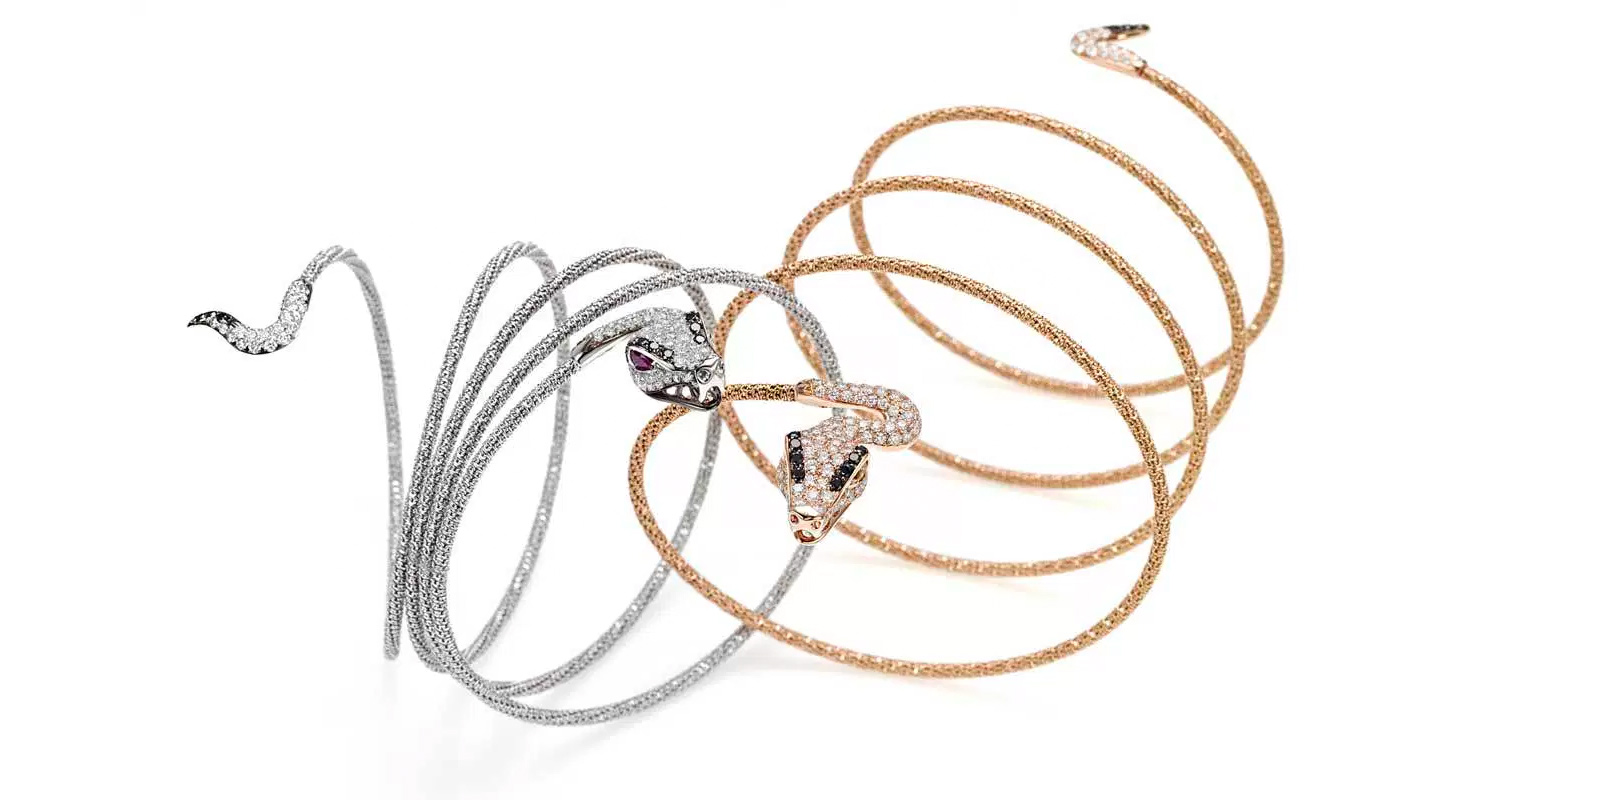 Giovanni Ferraris Snake bracelets in white and rose gold with diamonds